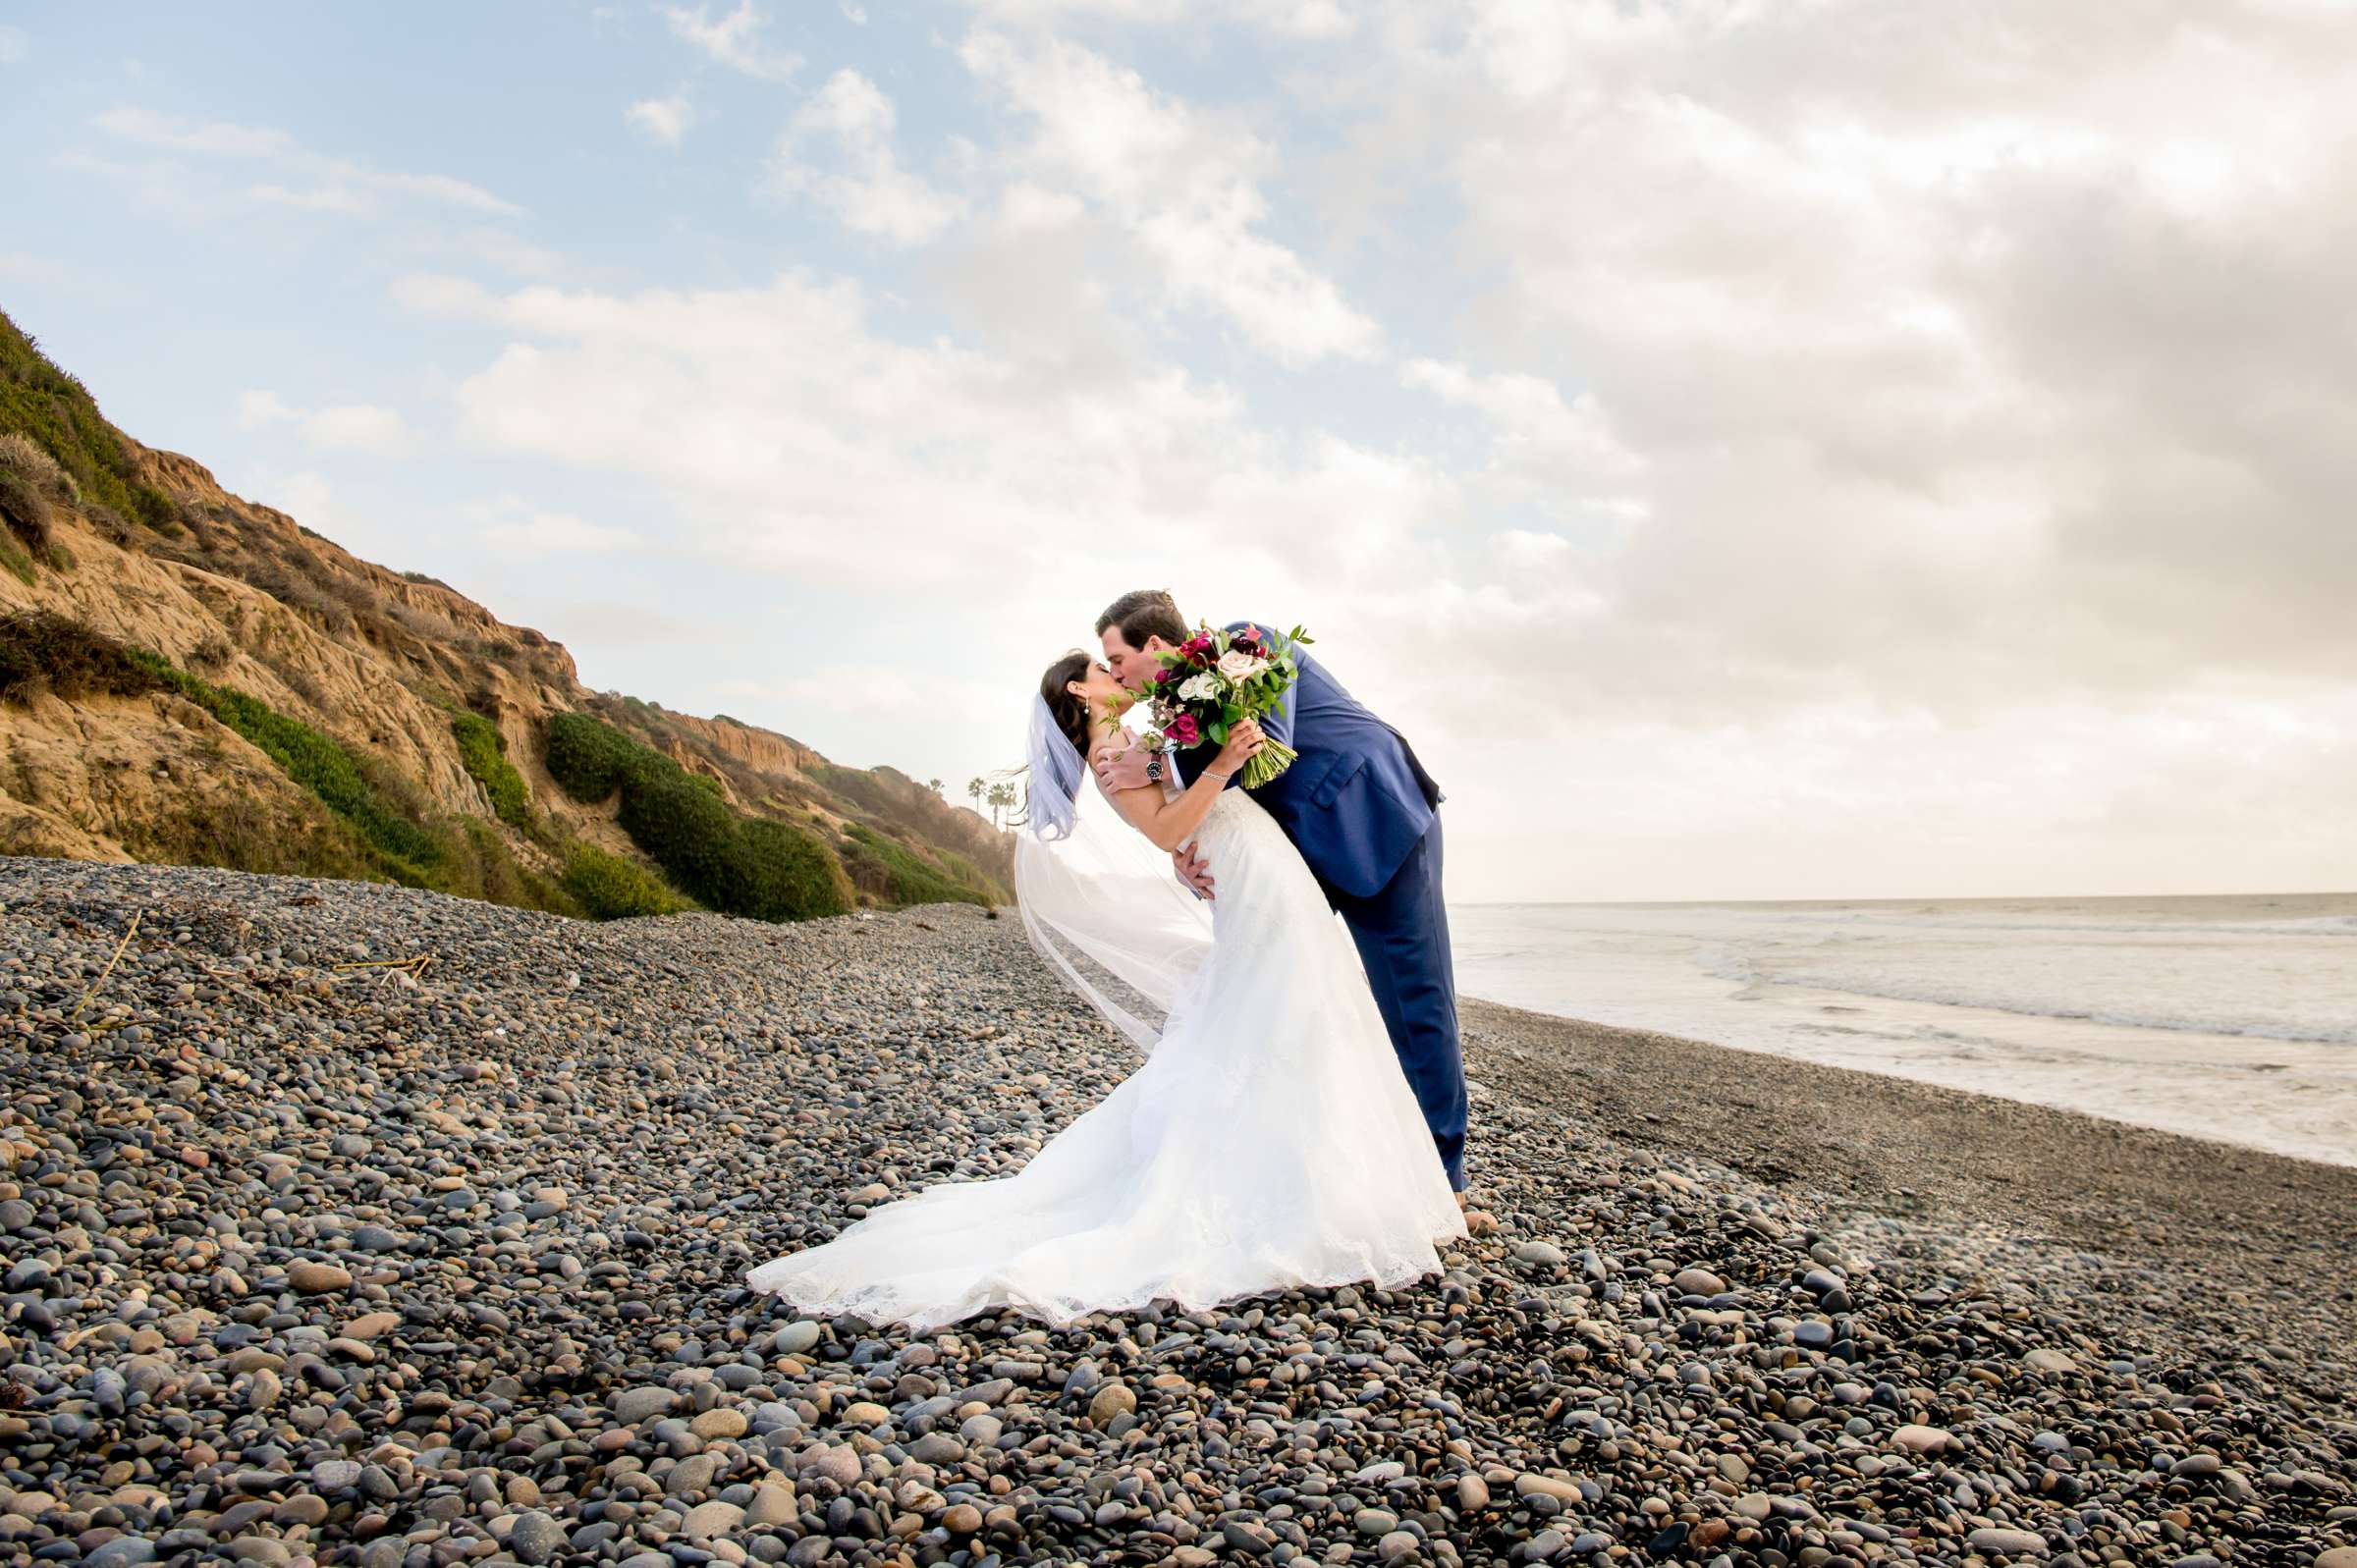 Cape Rey Carlsbad, A Hilton Resort Wedding, Jasmine and Kyle Wedding Photo #2 by True Photography